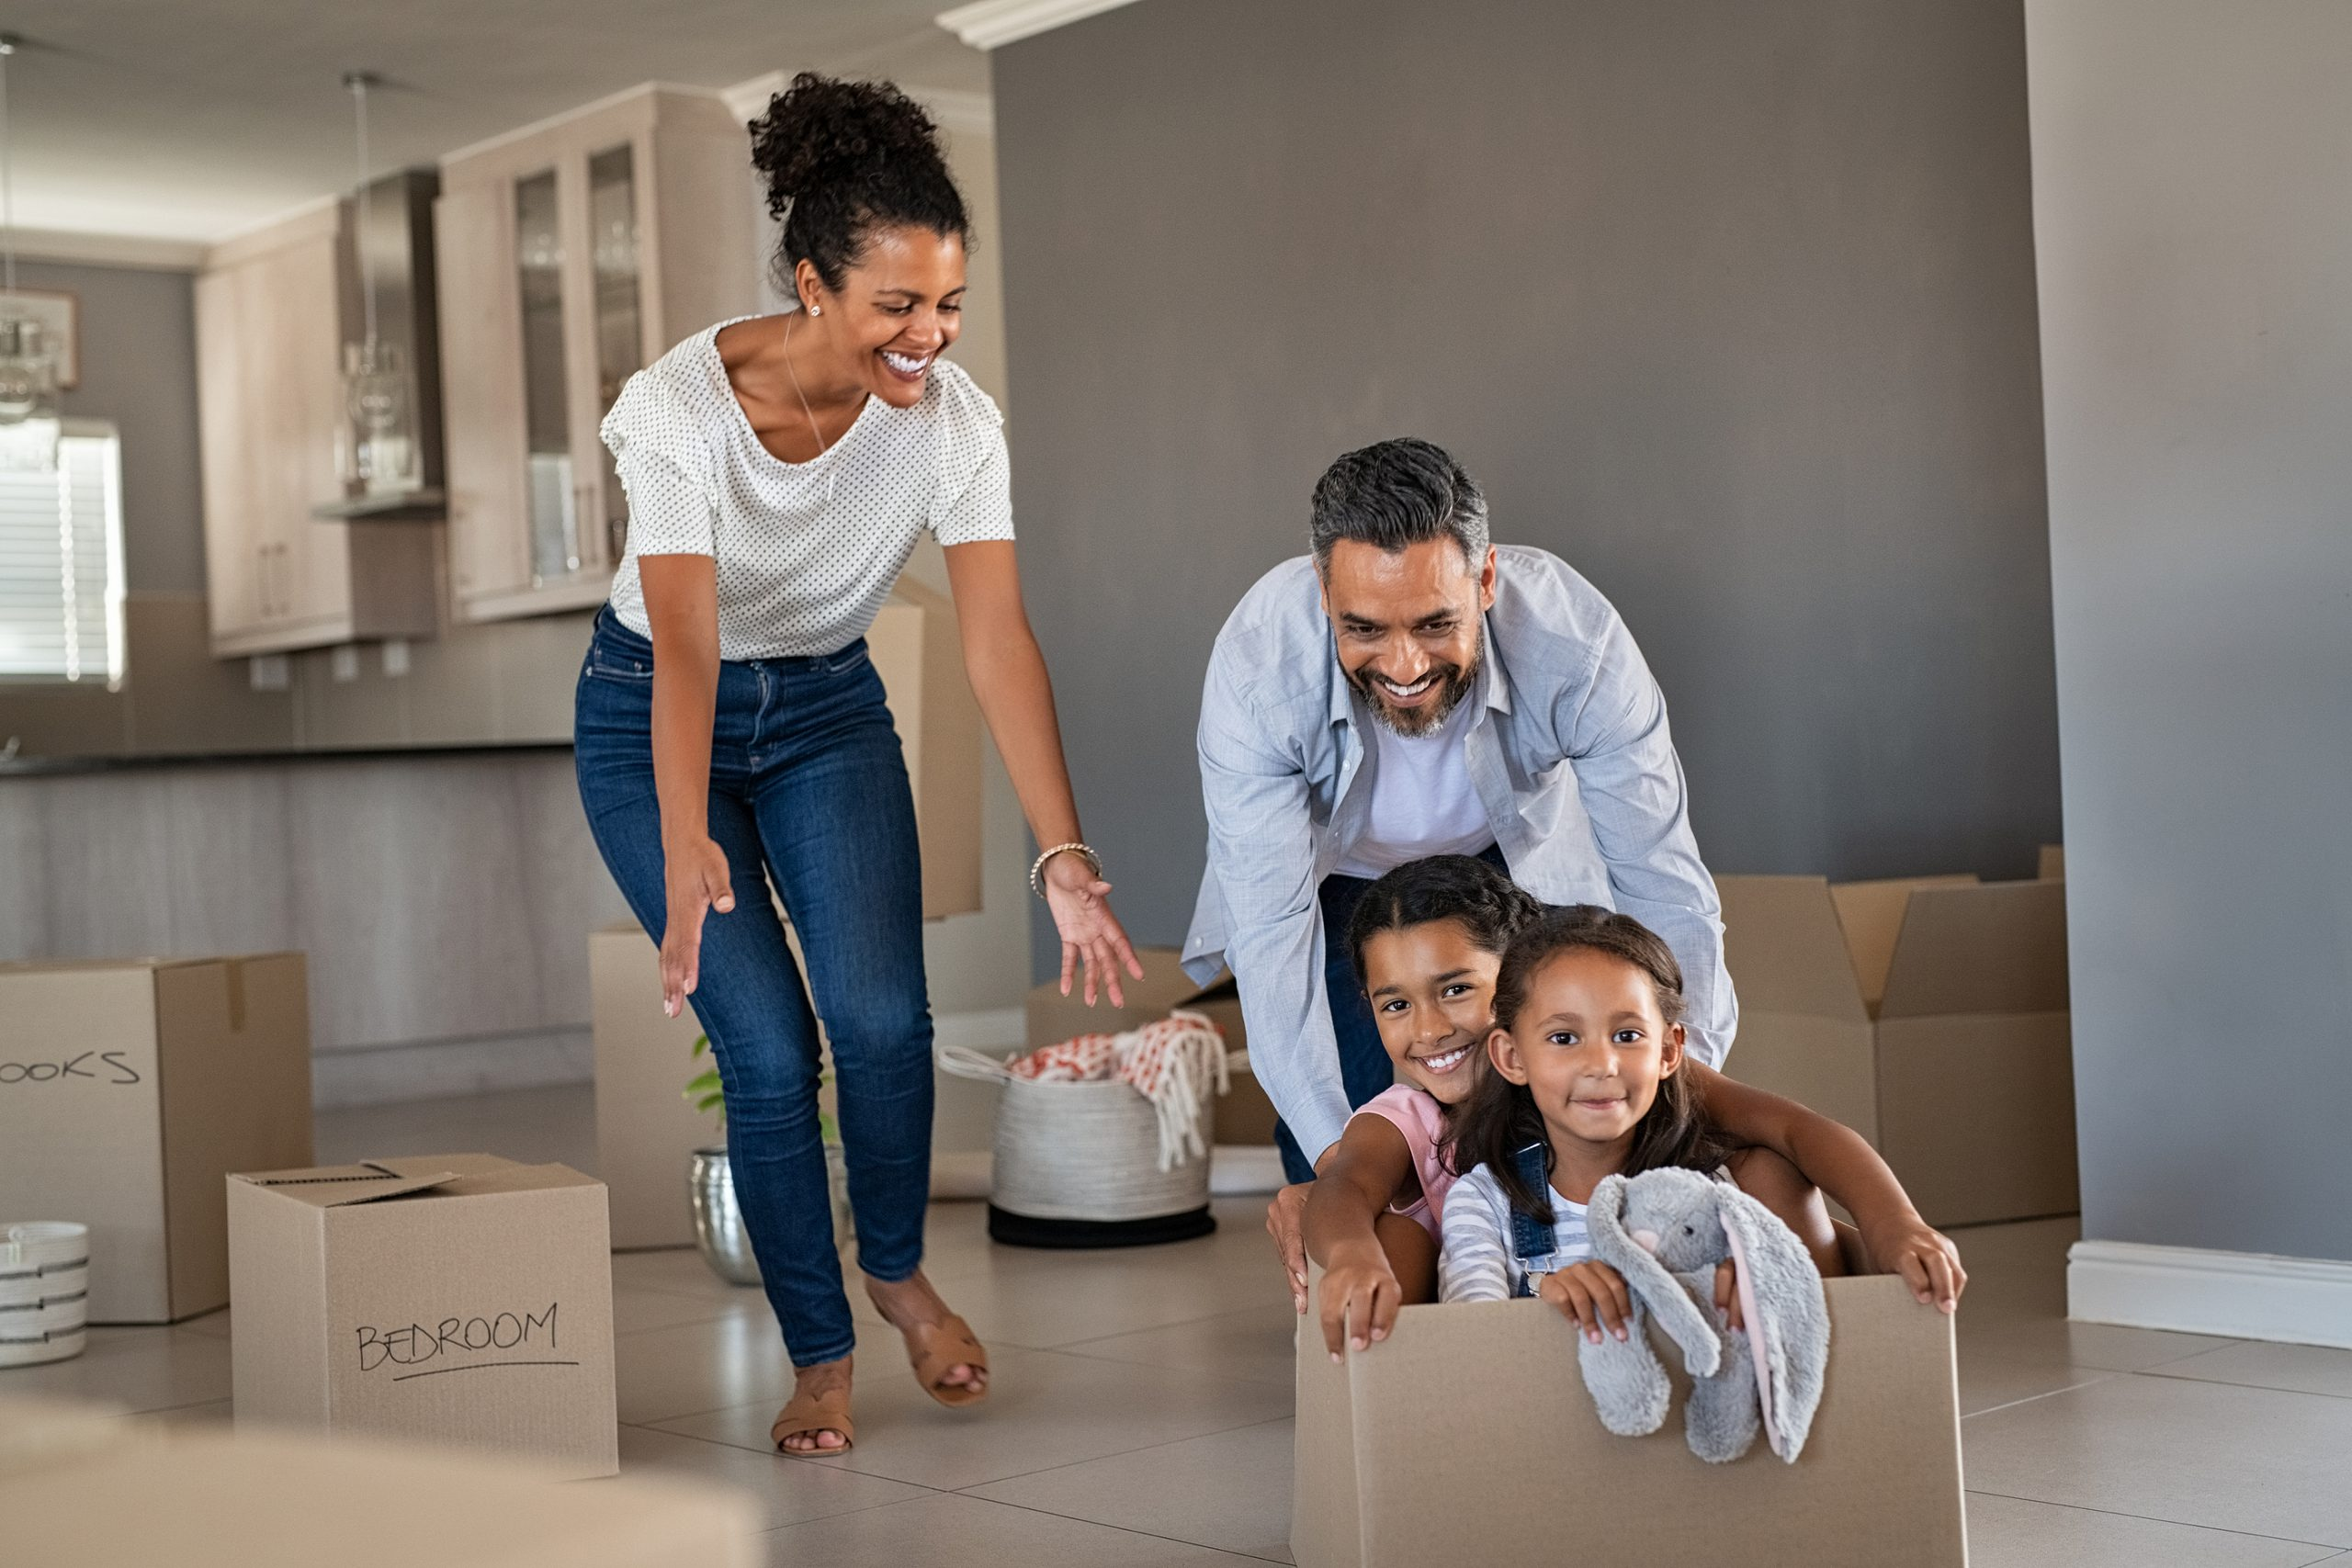 Top 4 Things You Should Look For In A Family Home